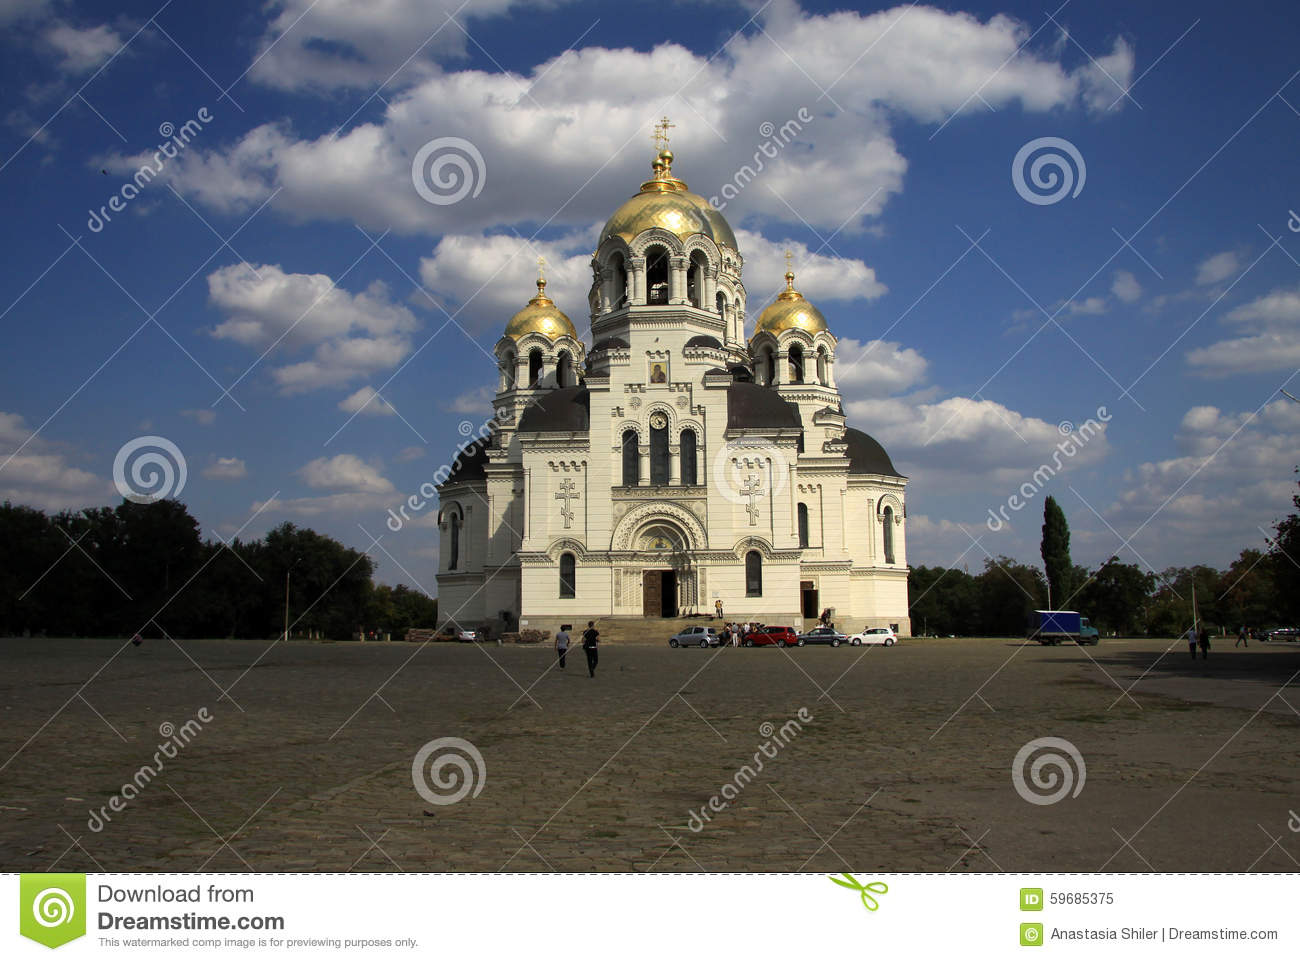 Ascension Cathedral Novocherkassk: history, description and interesting facts 59